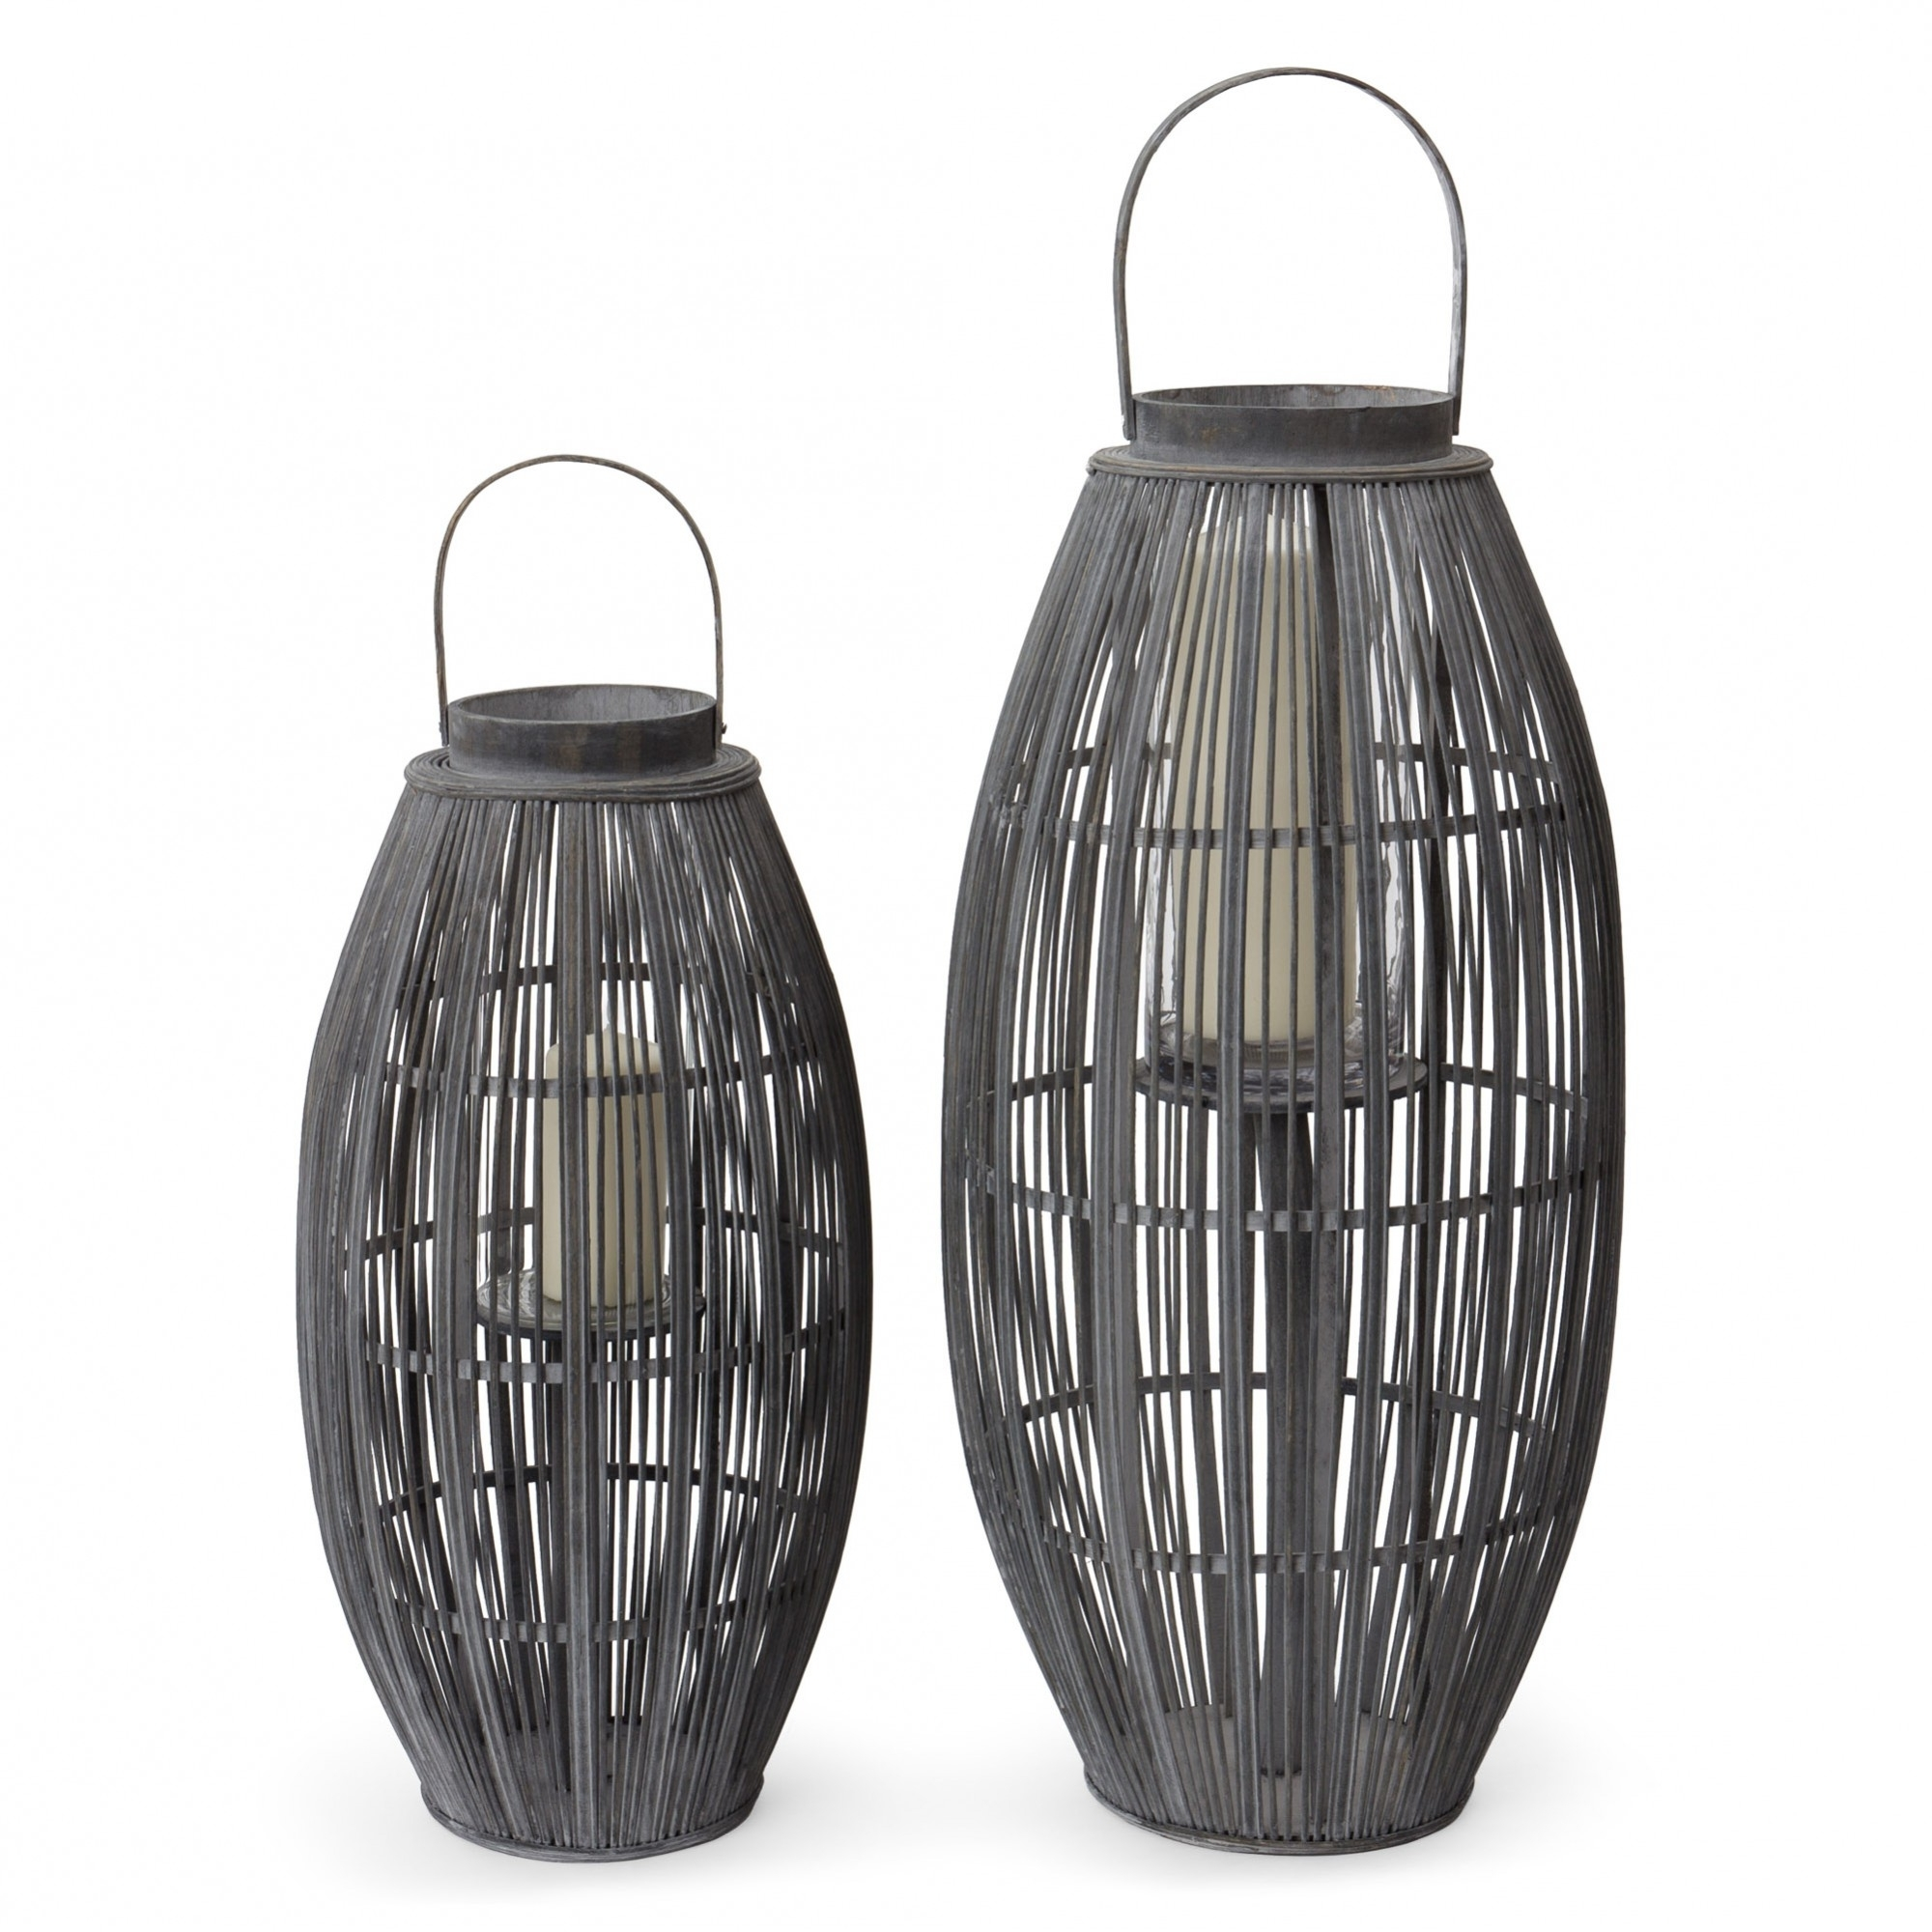 Outdoor Bamboo Lanterns Pertaining To Popular Niya Garden Lantern, Light Grey With Large Cage Design (Gallery 1 of 20)